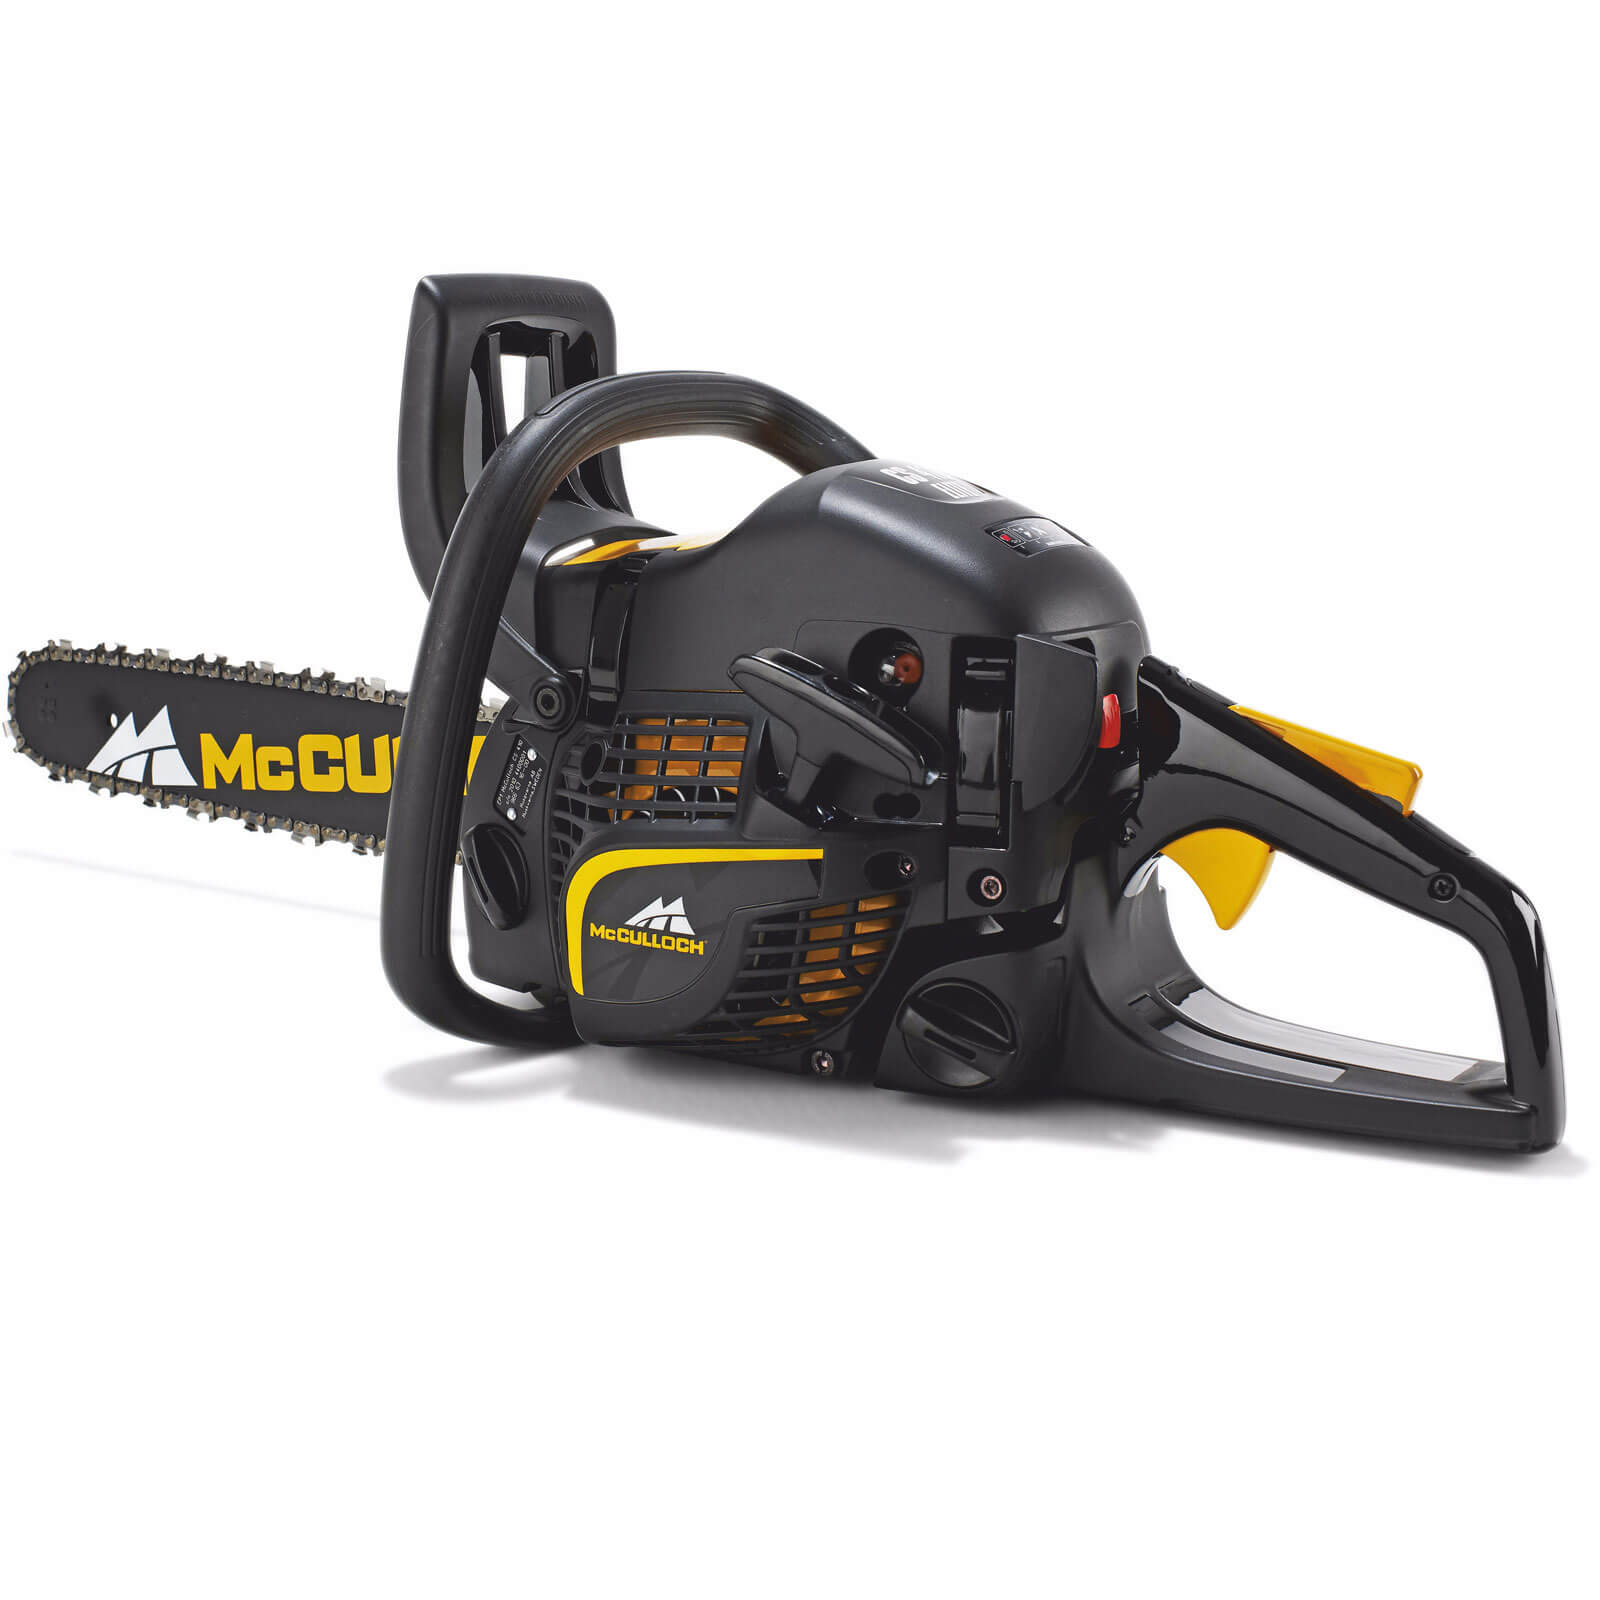 Image of McCulloch CS 410 ELITE Petrol Chainsaw 450mm